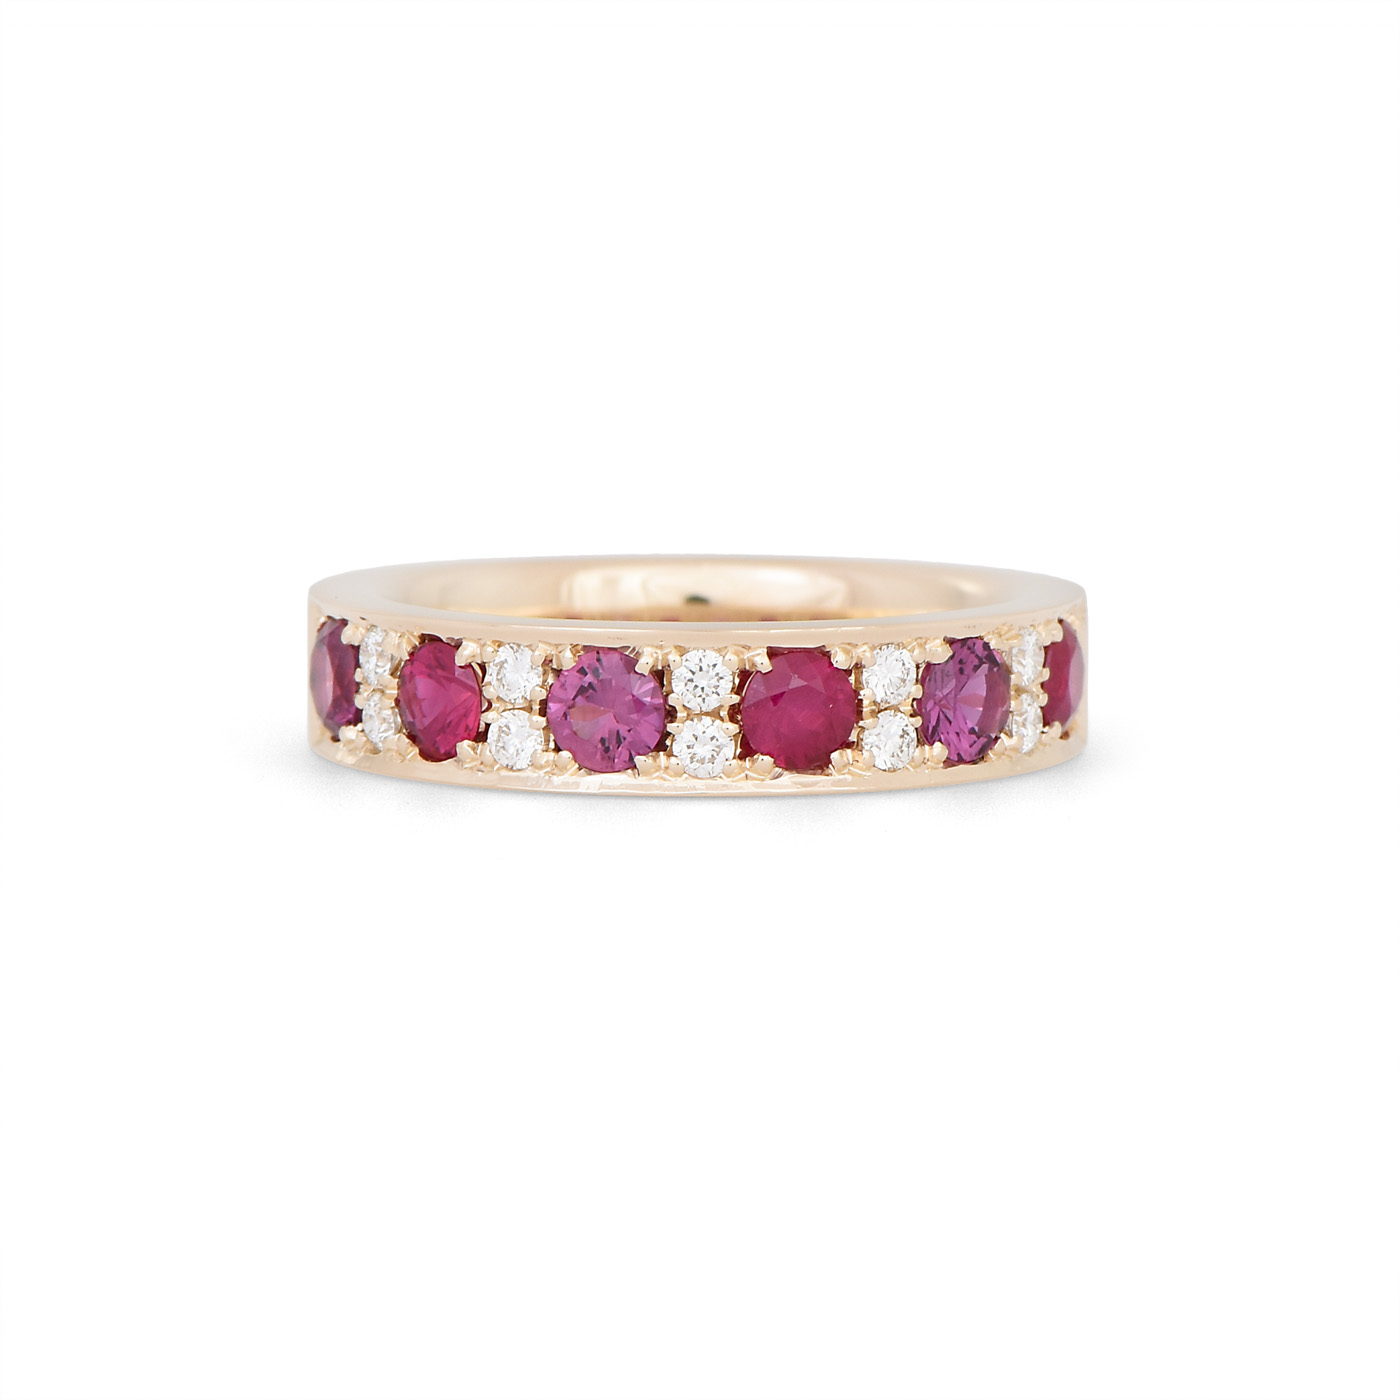 Gemstone and Diamond Pave set band